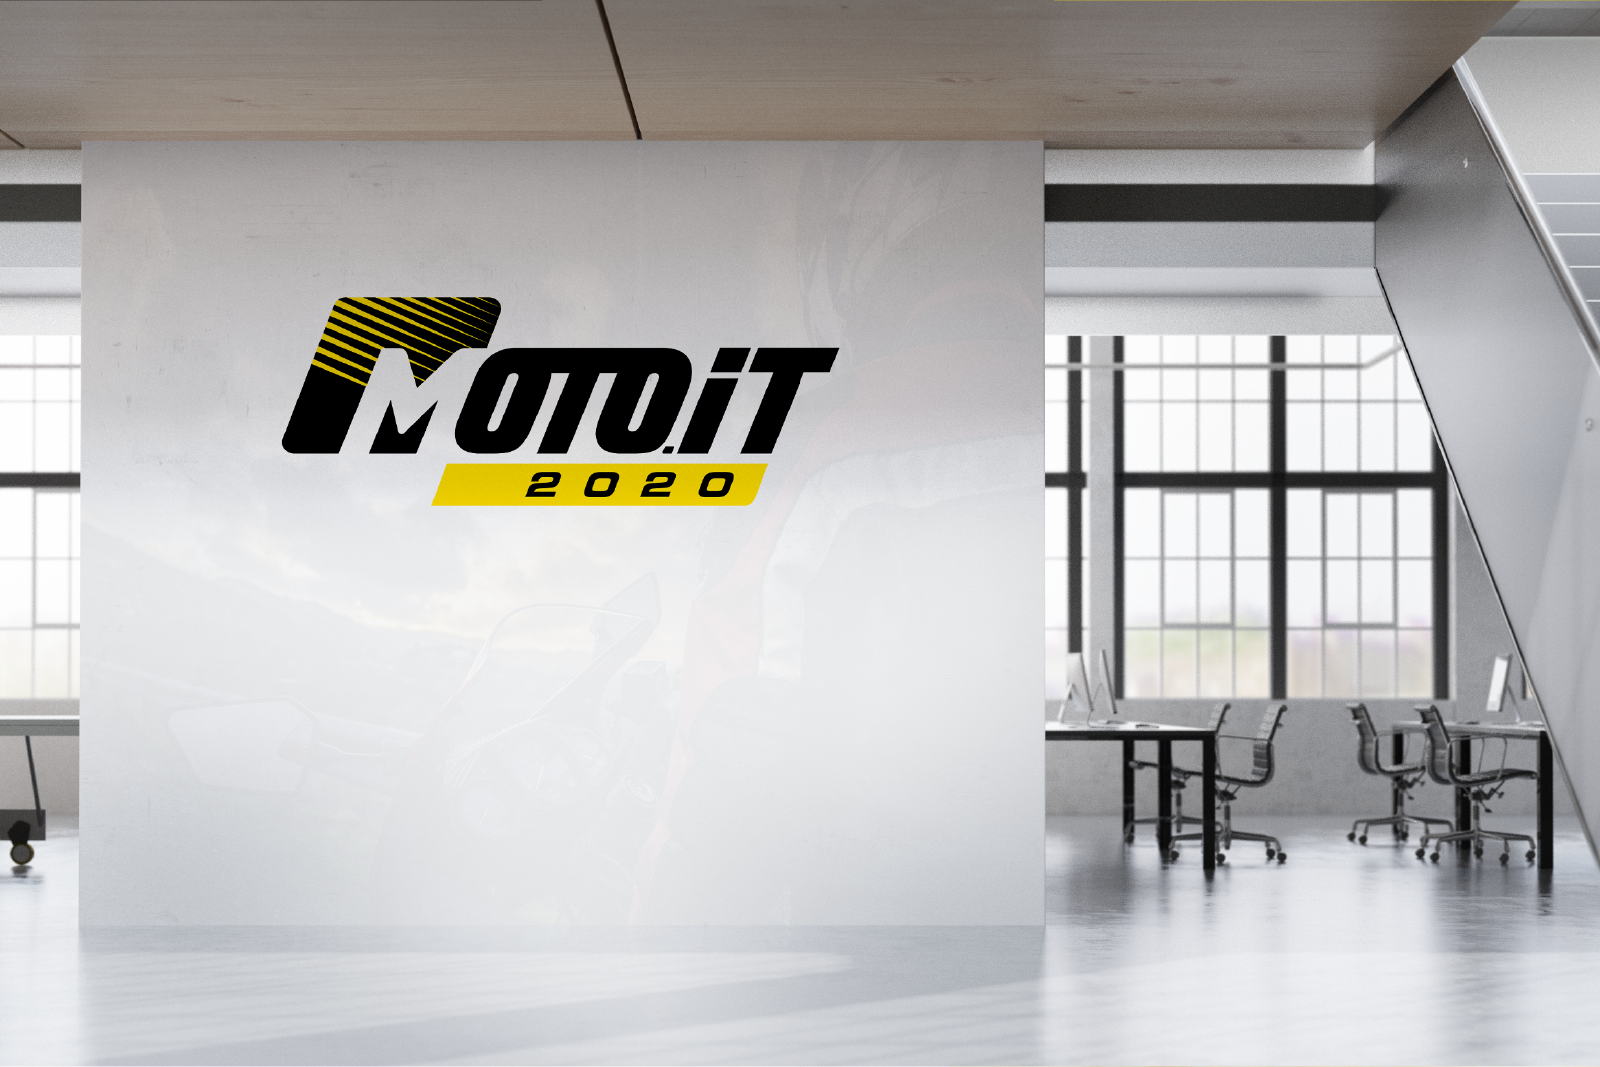 Moto.it studio example